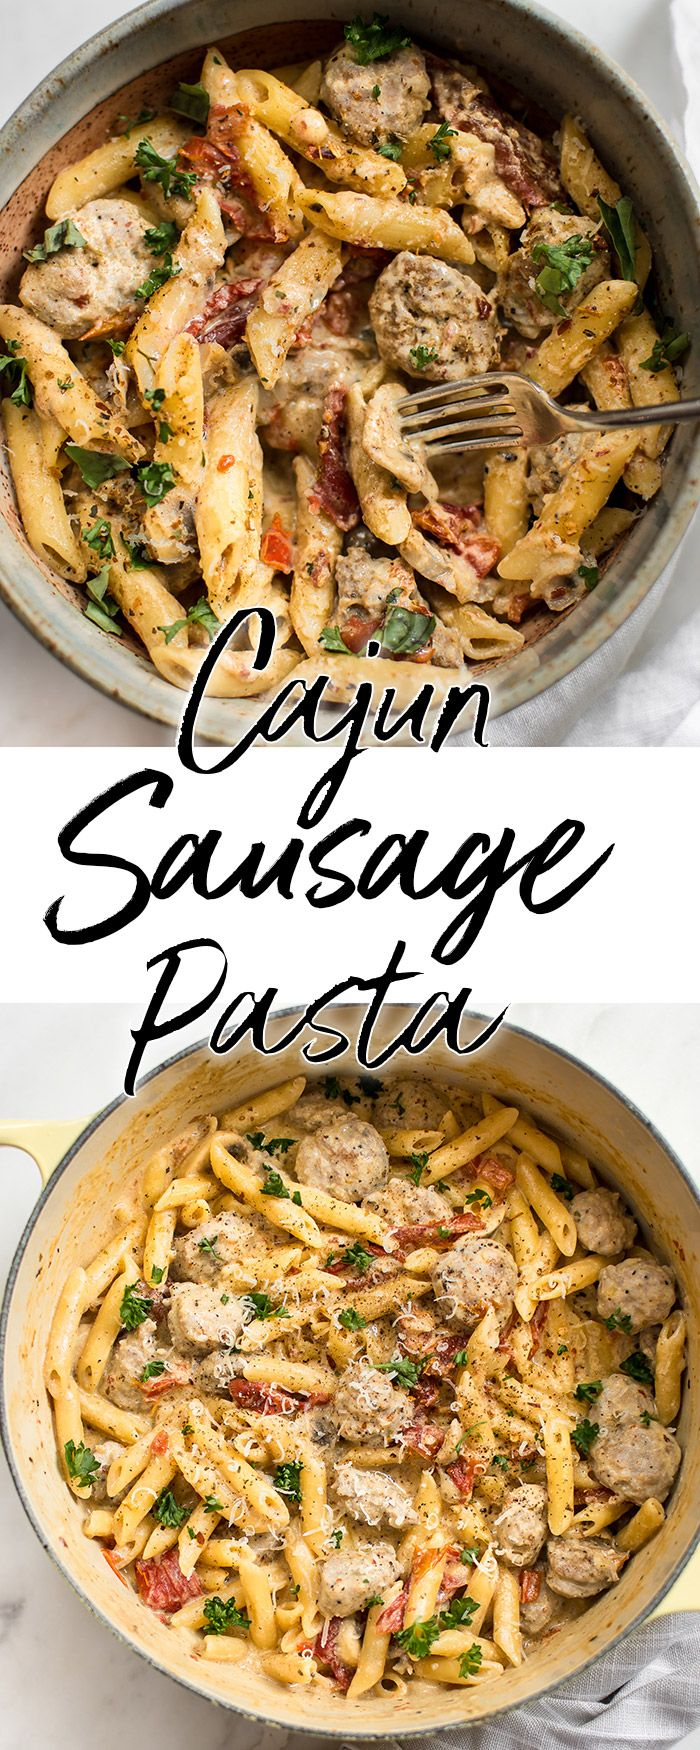 This easy one pot creamy Cajun sausage pasta recipe is flavorful comfort food at its best! Ready in just over half an hour. Perfect for a weeknight dinner. #Cajunpasta #sausagepasta #onepotpasta #onepotmeal #Cajunrecipe